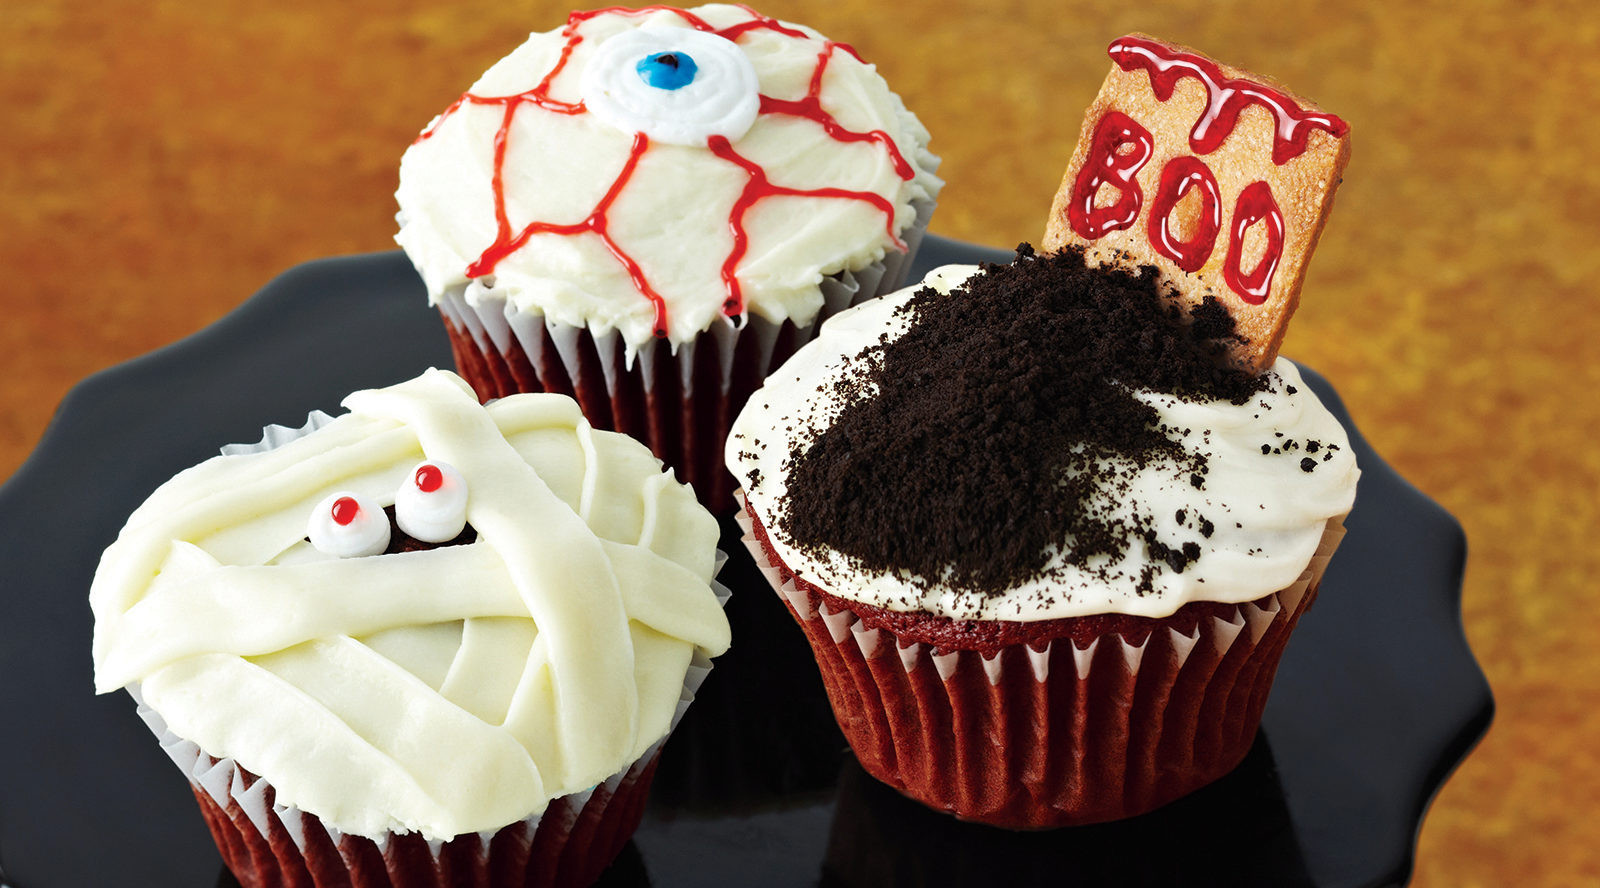 Red Velvet Halloween Cupcakes  Chocolate Spider Web Cupcakes with Cream Cheese Icing